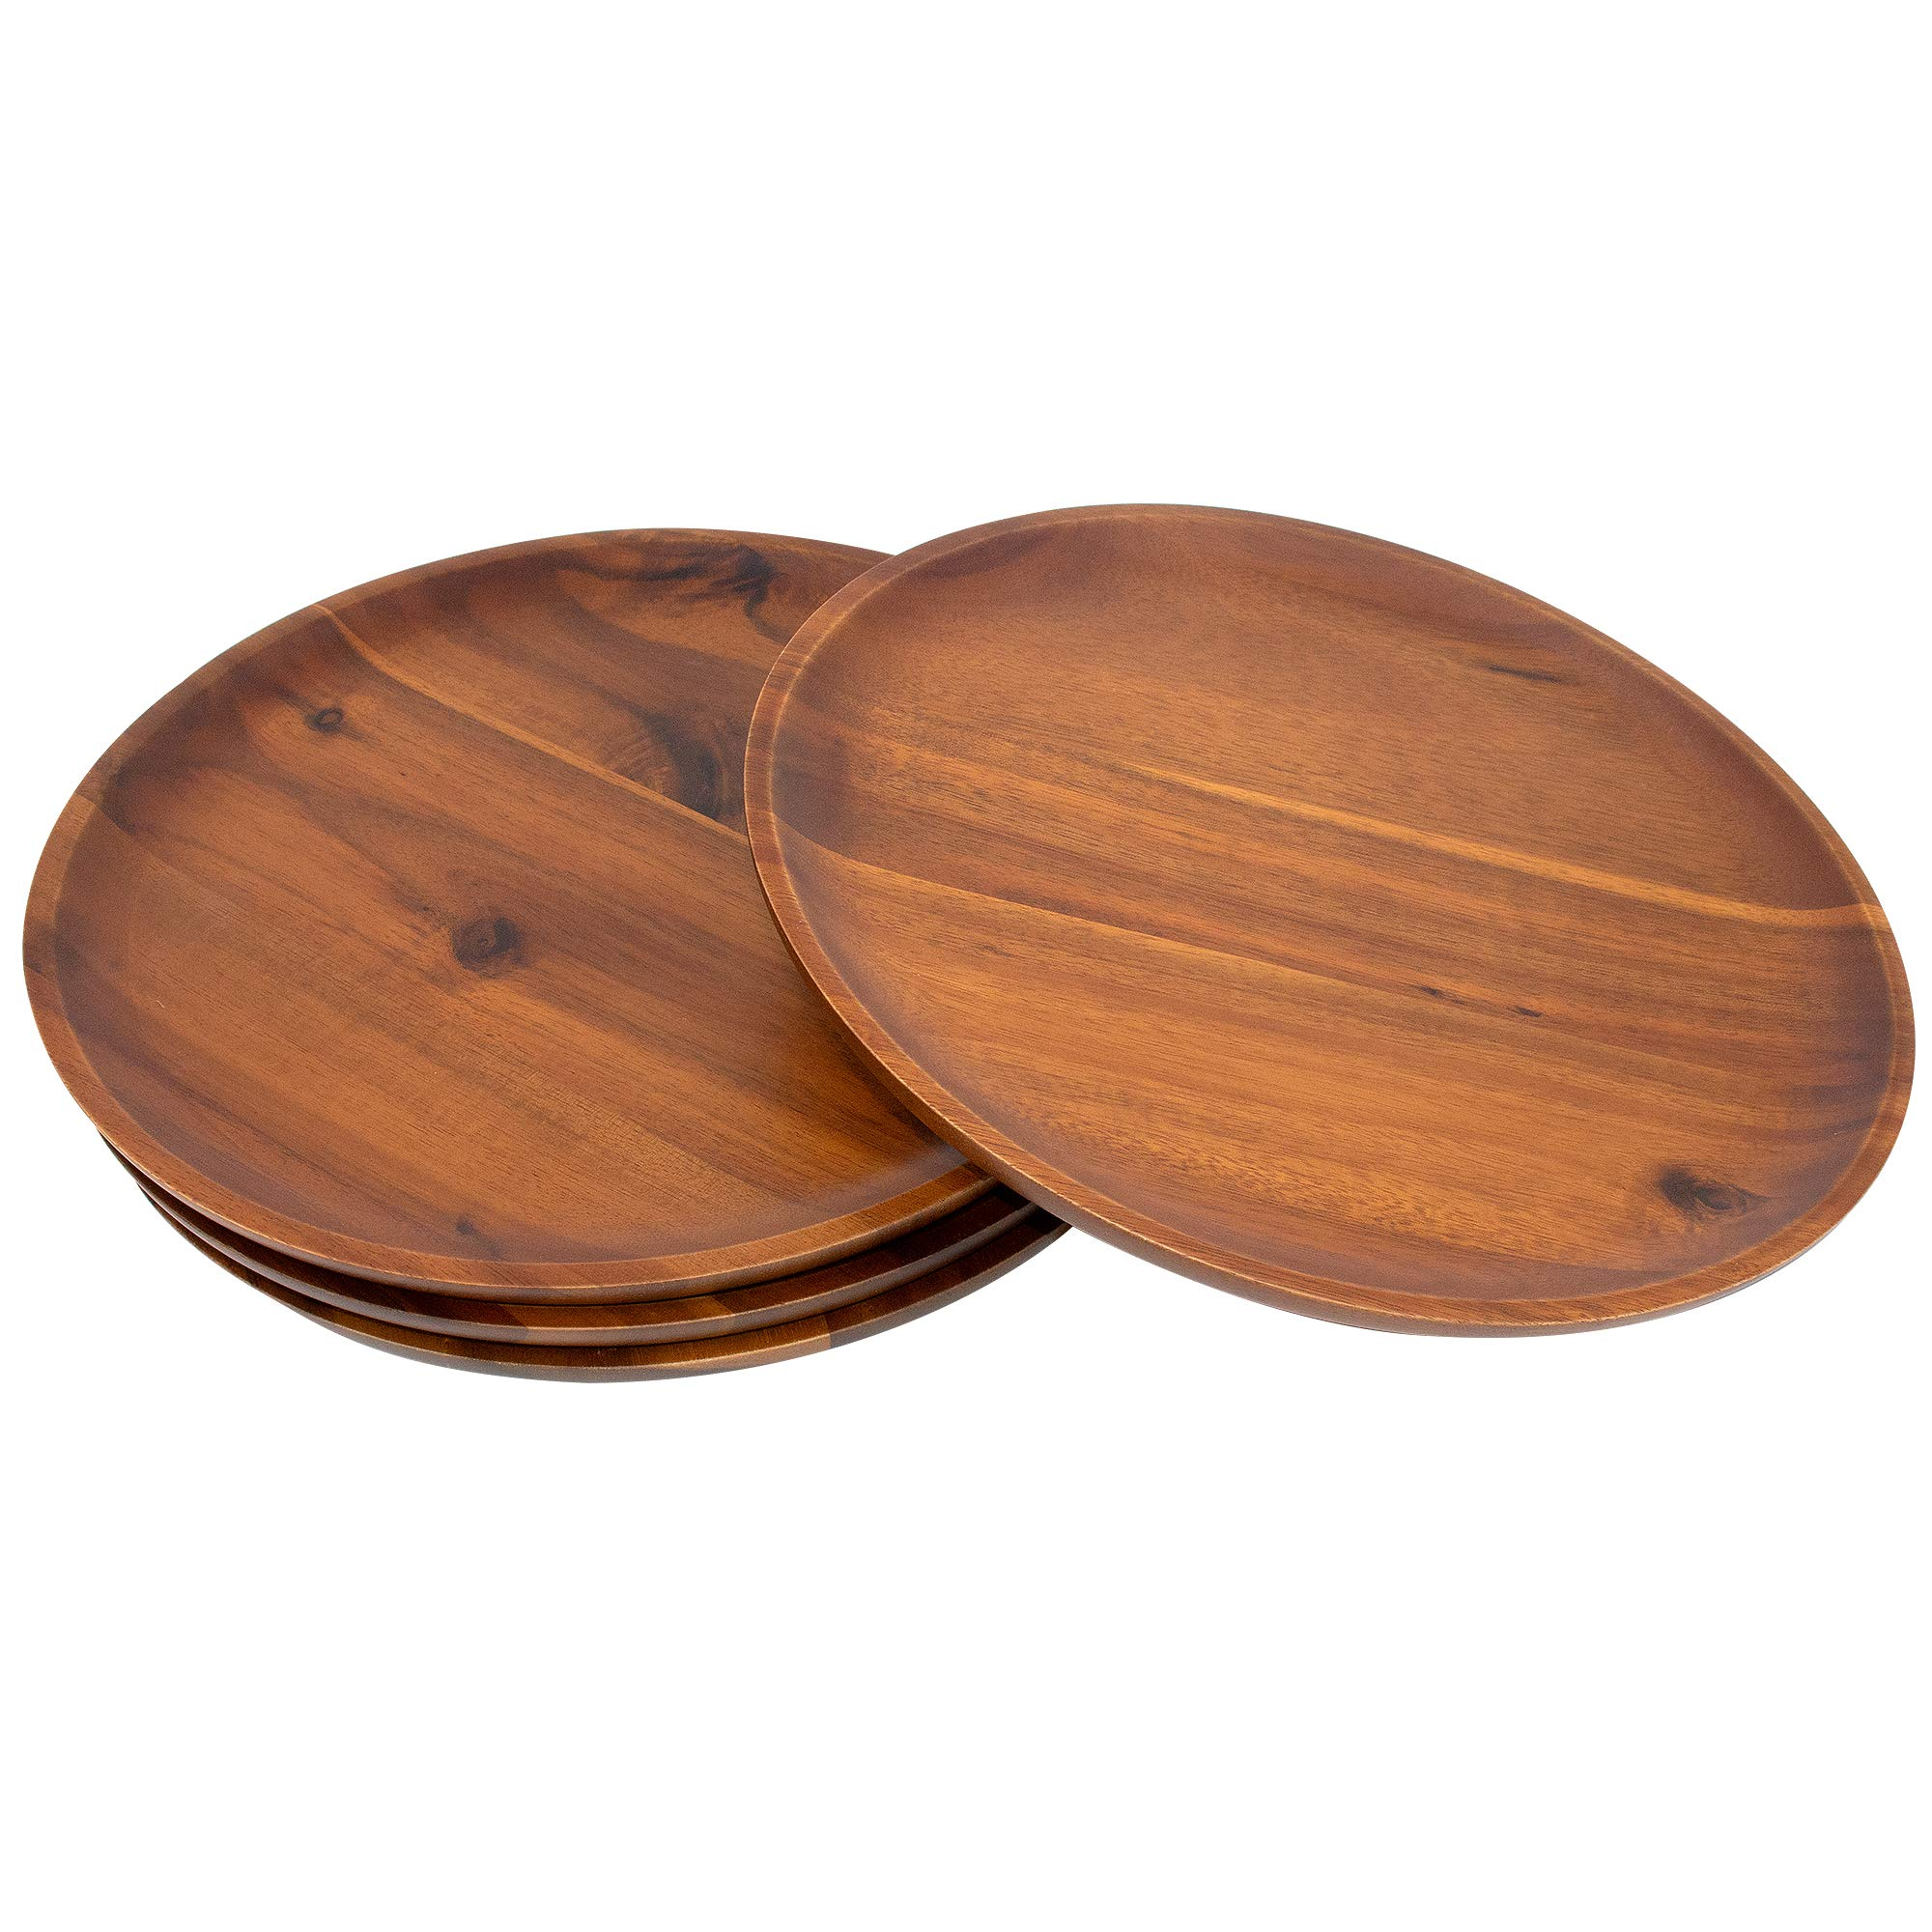 AIDEA Acacia Wood Food Serving Charger Plates - 11 inch Set of 4 Round Wooden Dishes Snack Plates by AIDEA (Image #5)